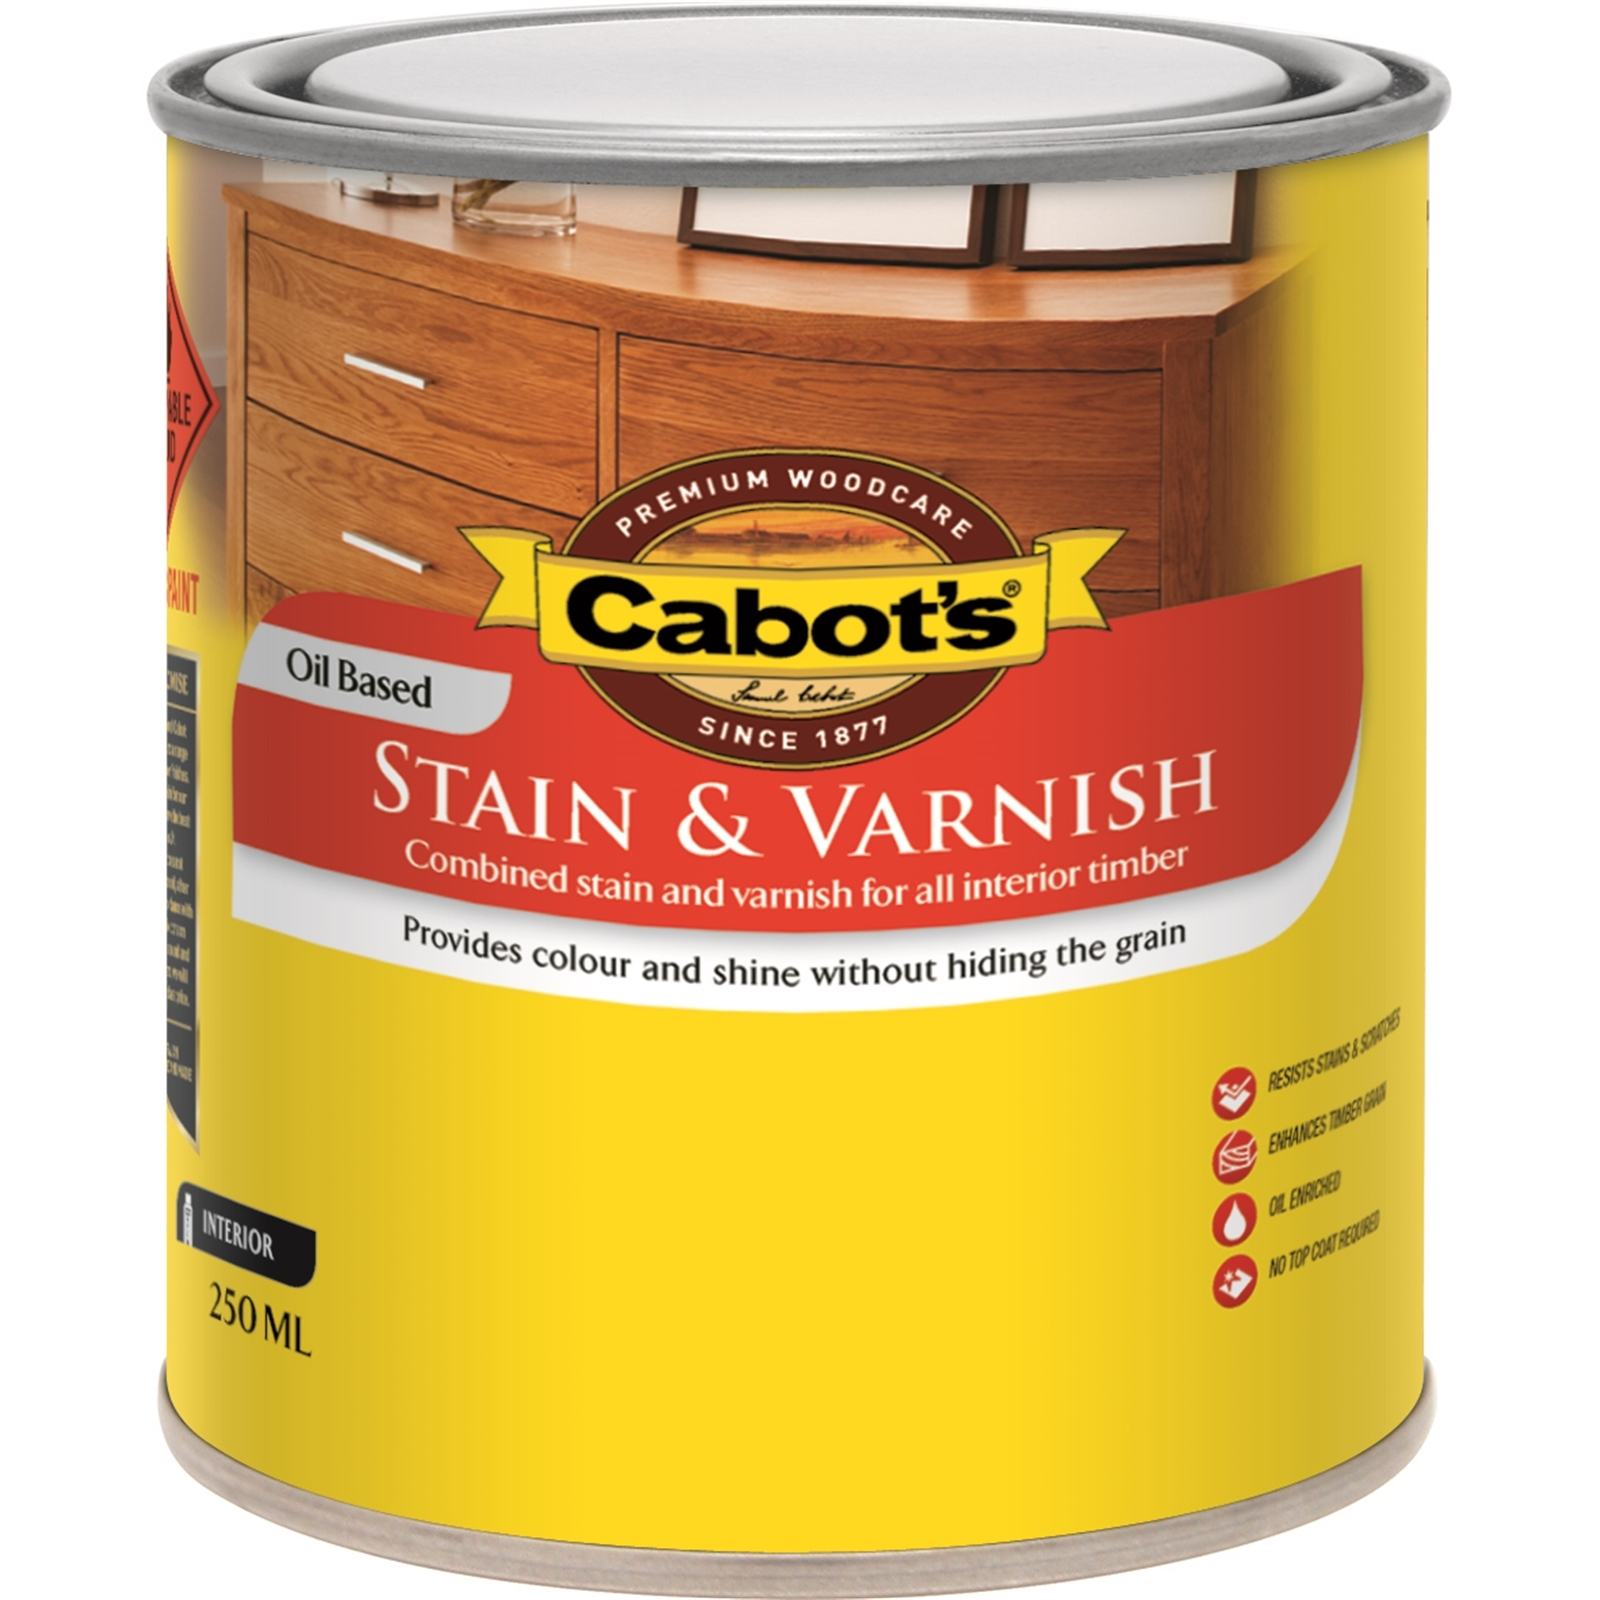 Cabot's 250ml Satin Oil Based Walnut Stain And Varnish